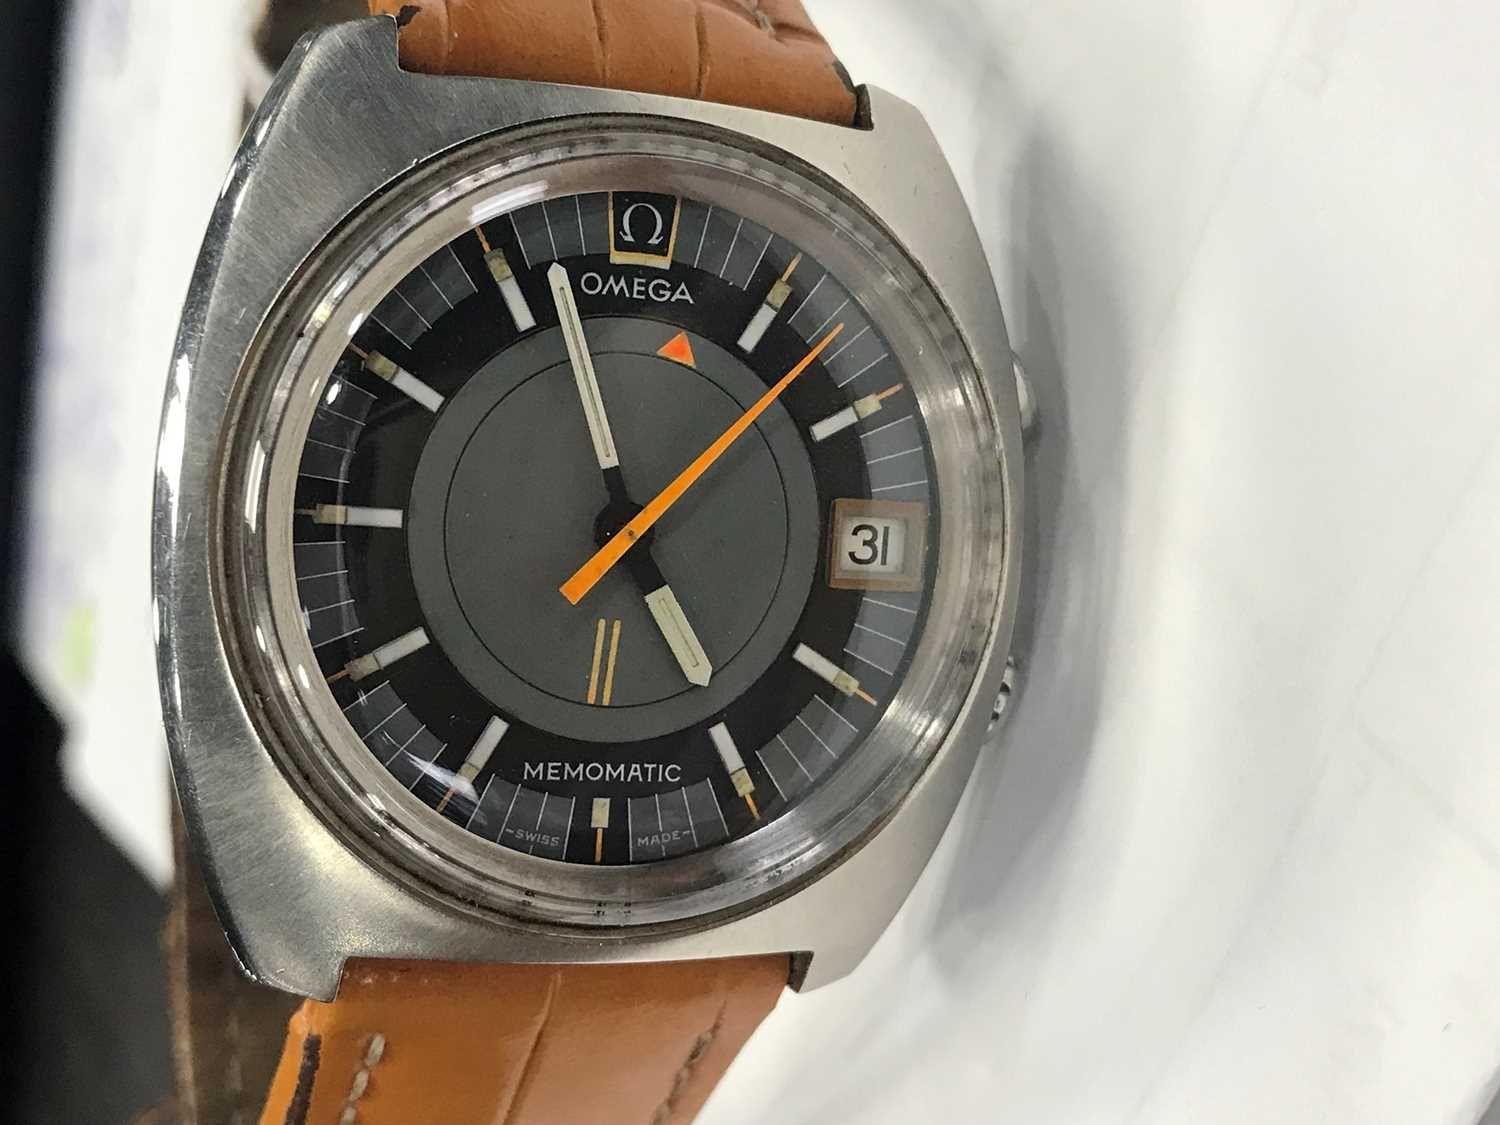 A GENTLEMAN'S OMEGA MEMOMATIC STAINLESS STEEL AUTOMATIC WRIST WATCH - Image 5 of 7